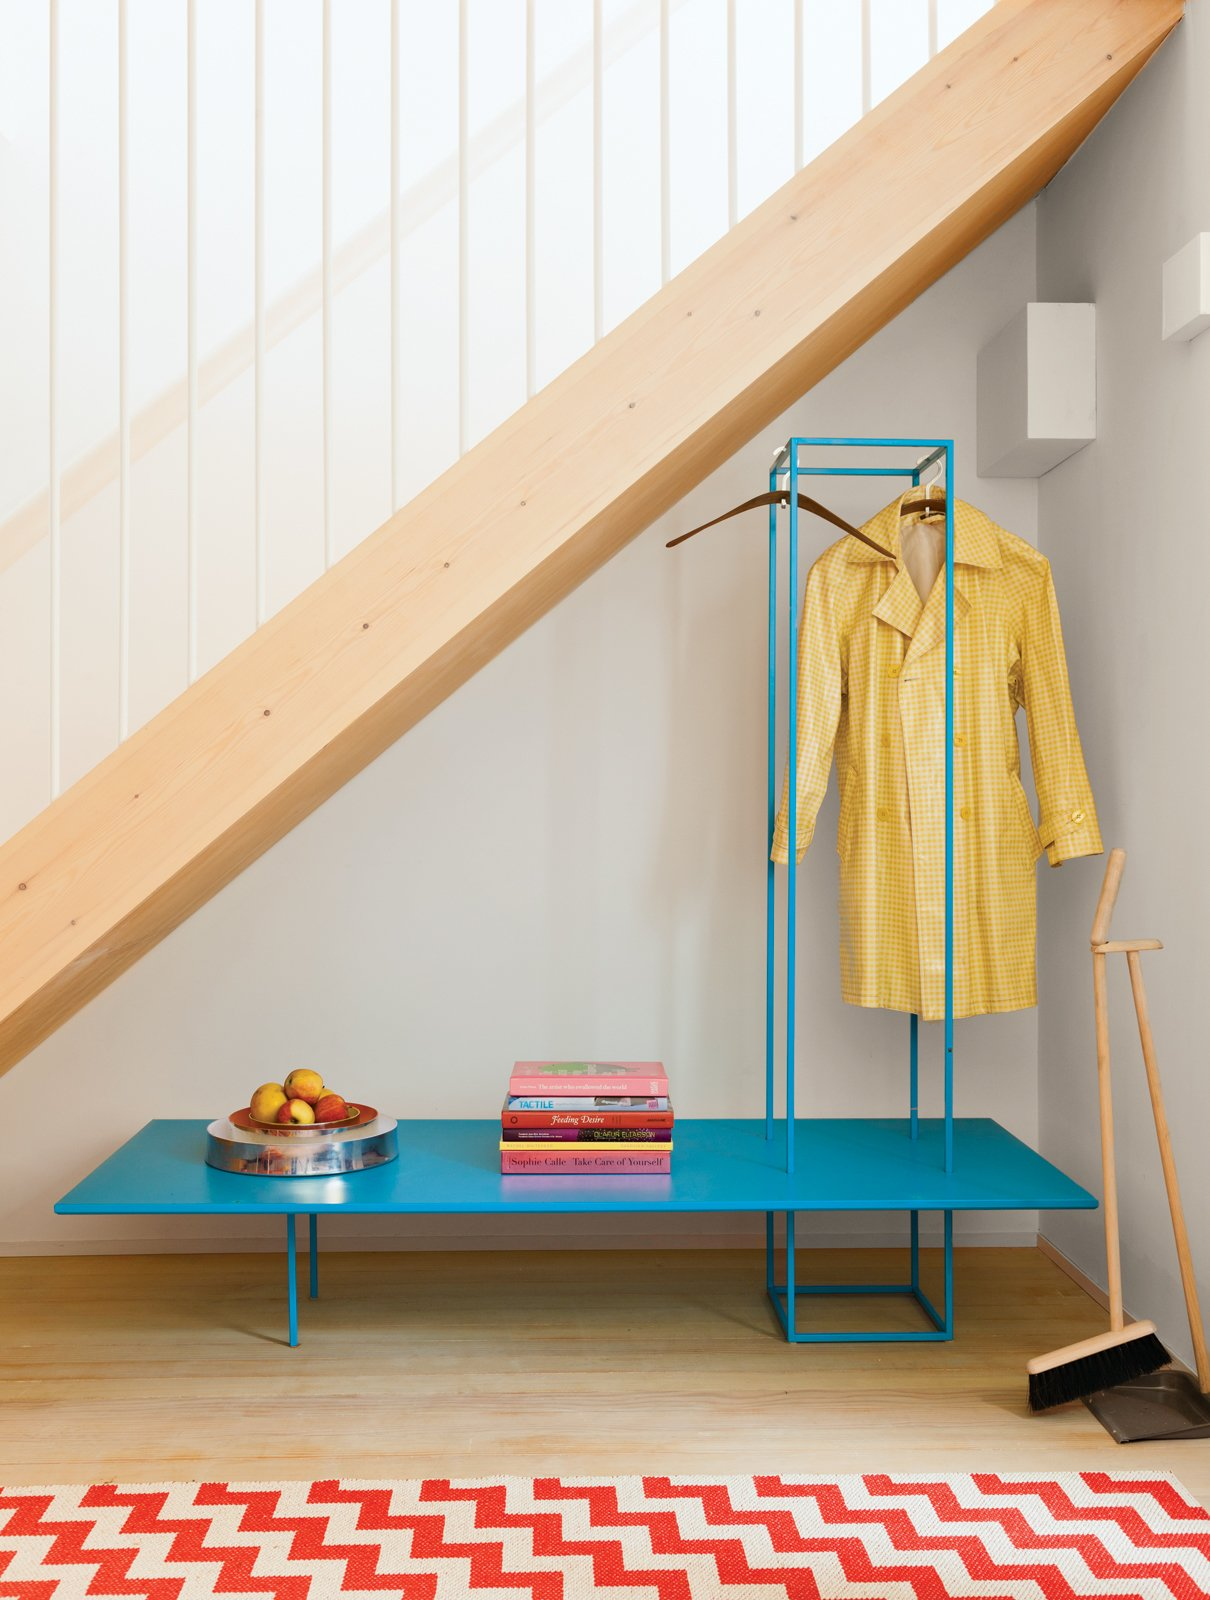 Furniture with emphasized linear elements helps prevent the appearance of clutter in small spaces. It's particularly effective when highlighted in playful colors like the blue bench storage rack in this London guesthouse. Photo by Ben Anders. Tagged: Staircase.  190+ Best Modern Staircase Ideas by Dwell from A Colorful, Custom-Built Guesthouse in London